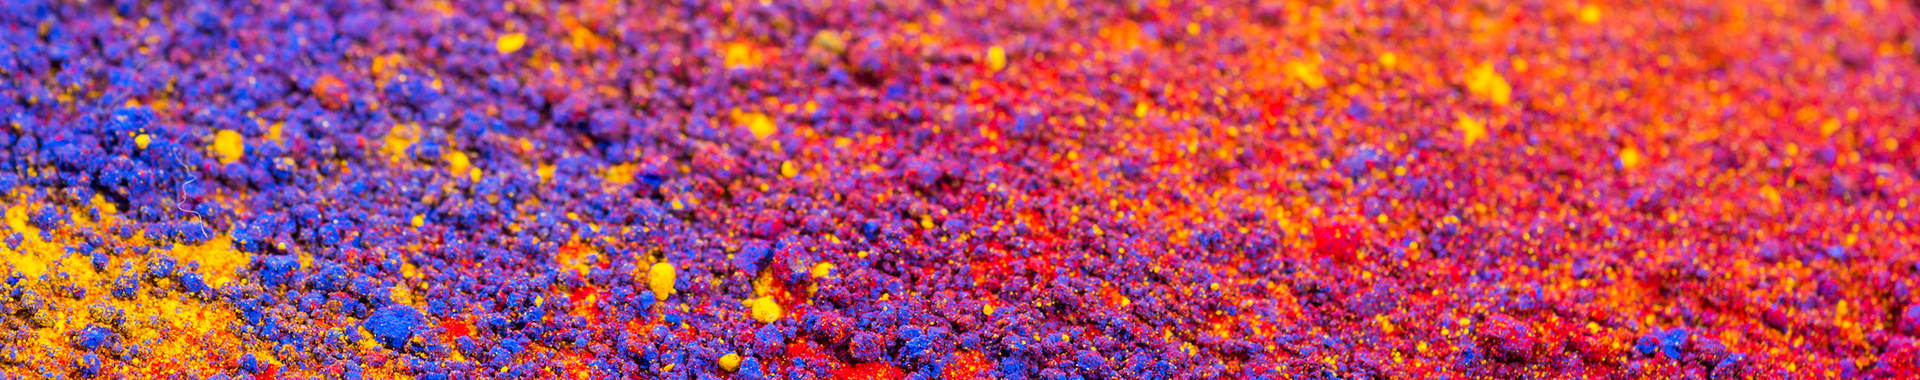 Abstract image of multi-colored dust